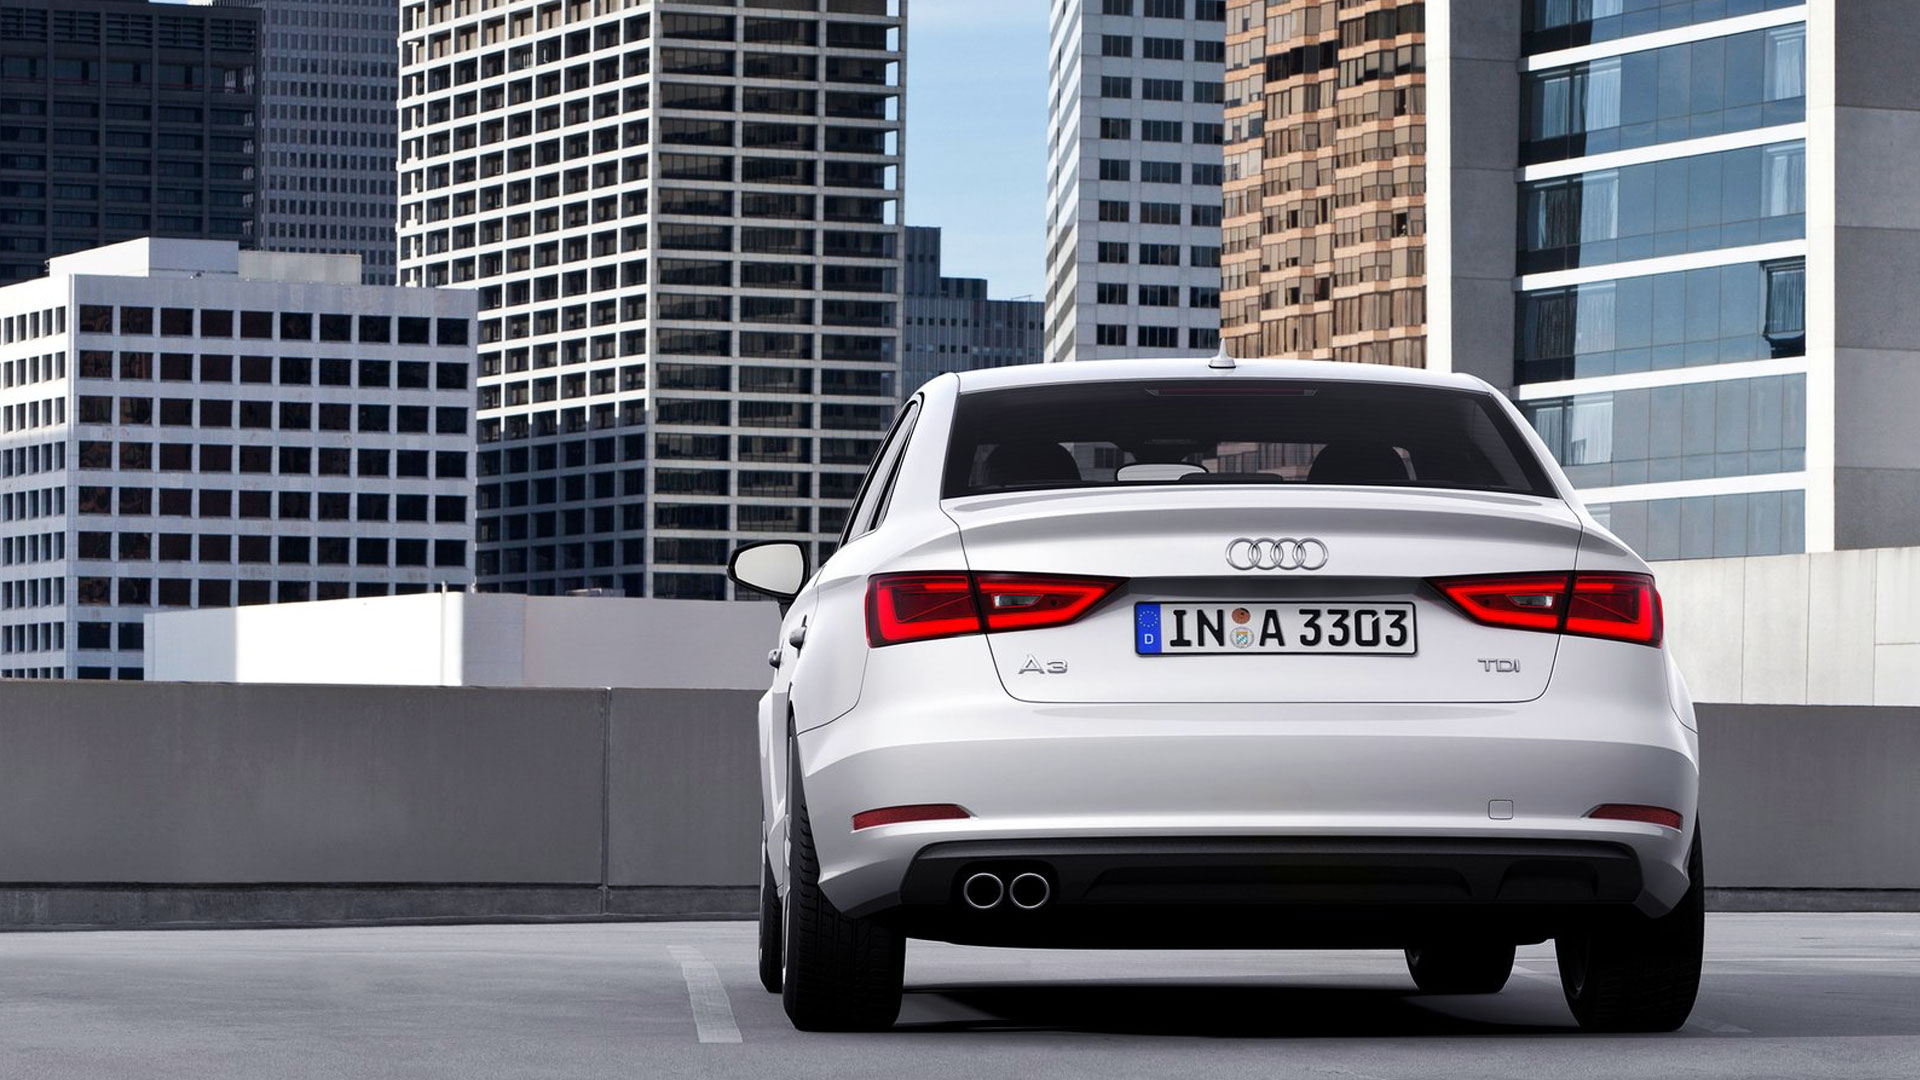 2014 Audi A3 Sedan Specs 2014 HD Wallpaper